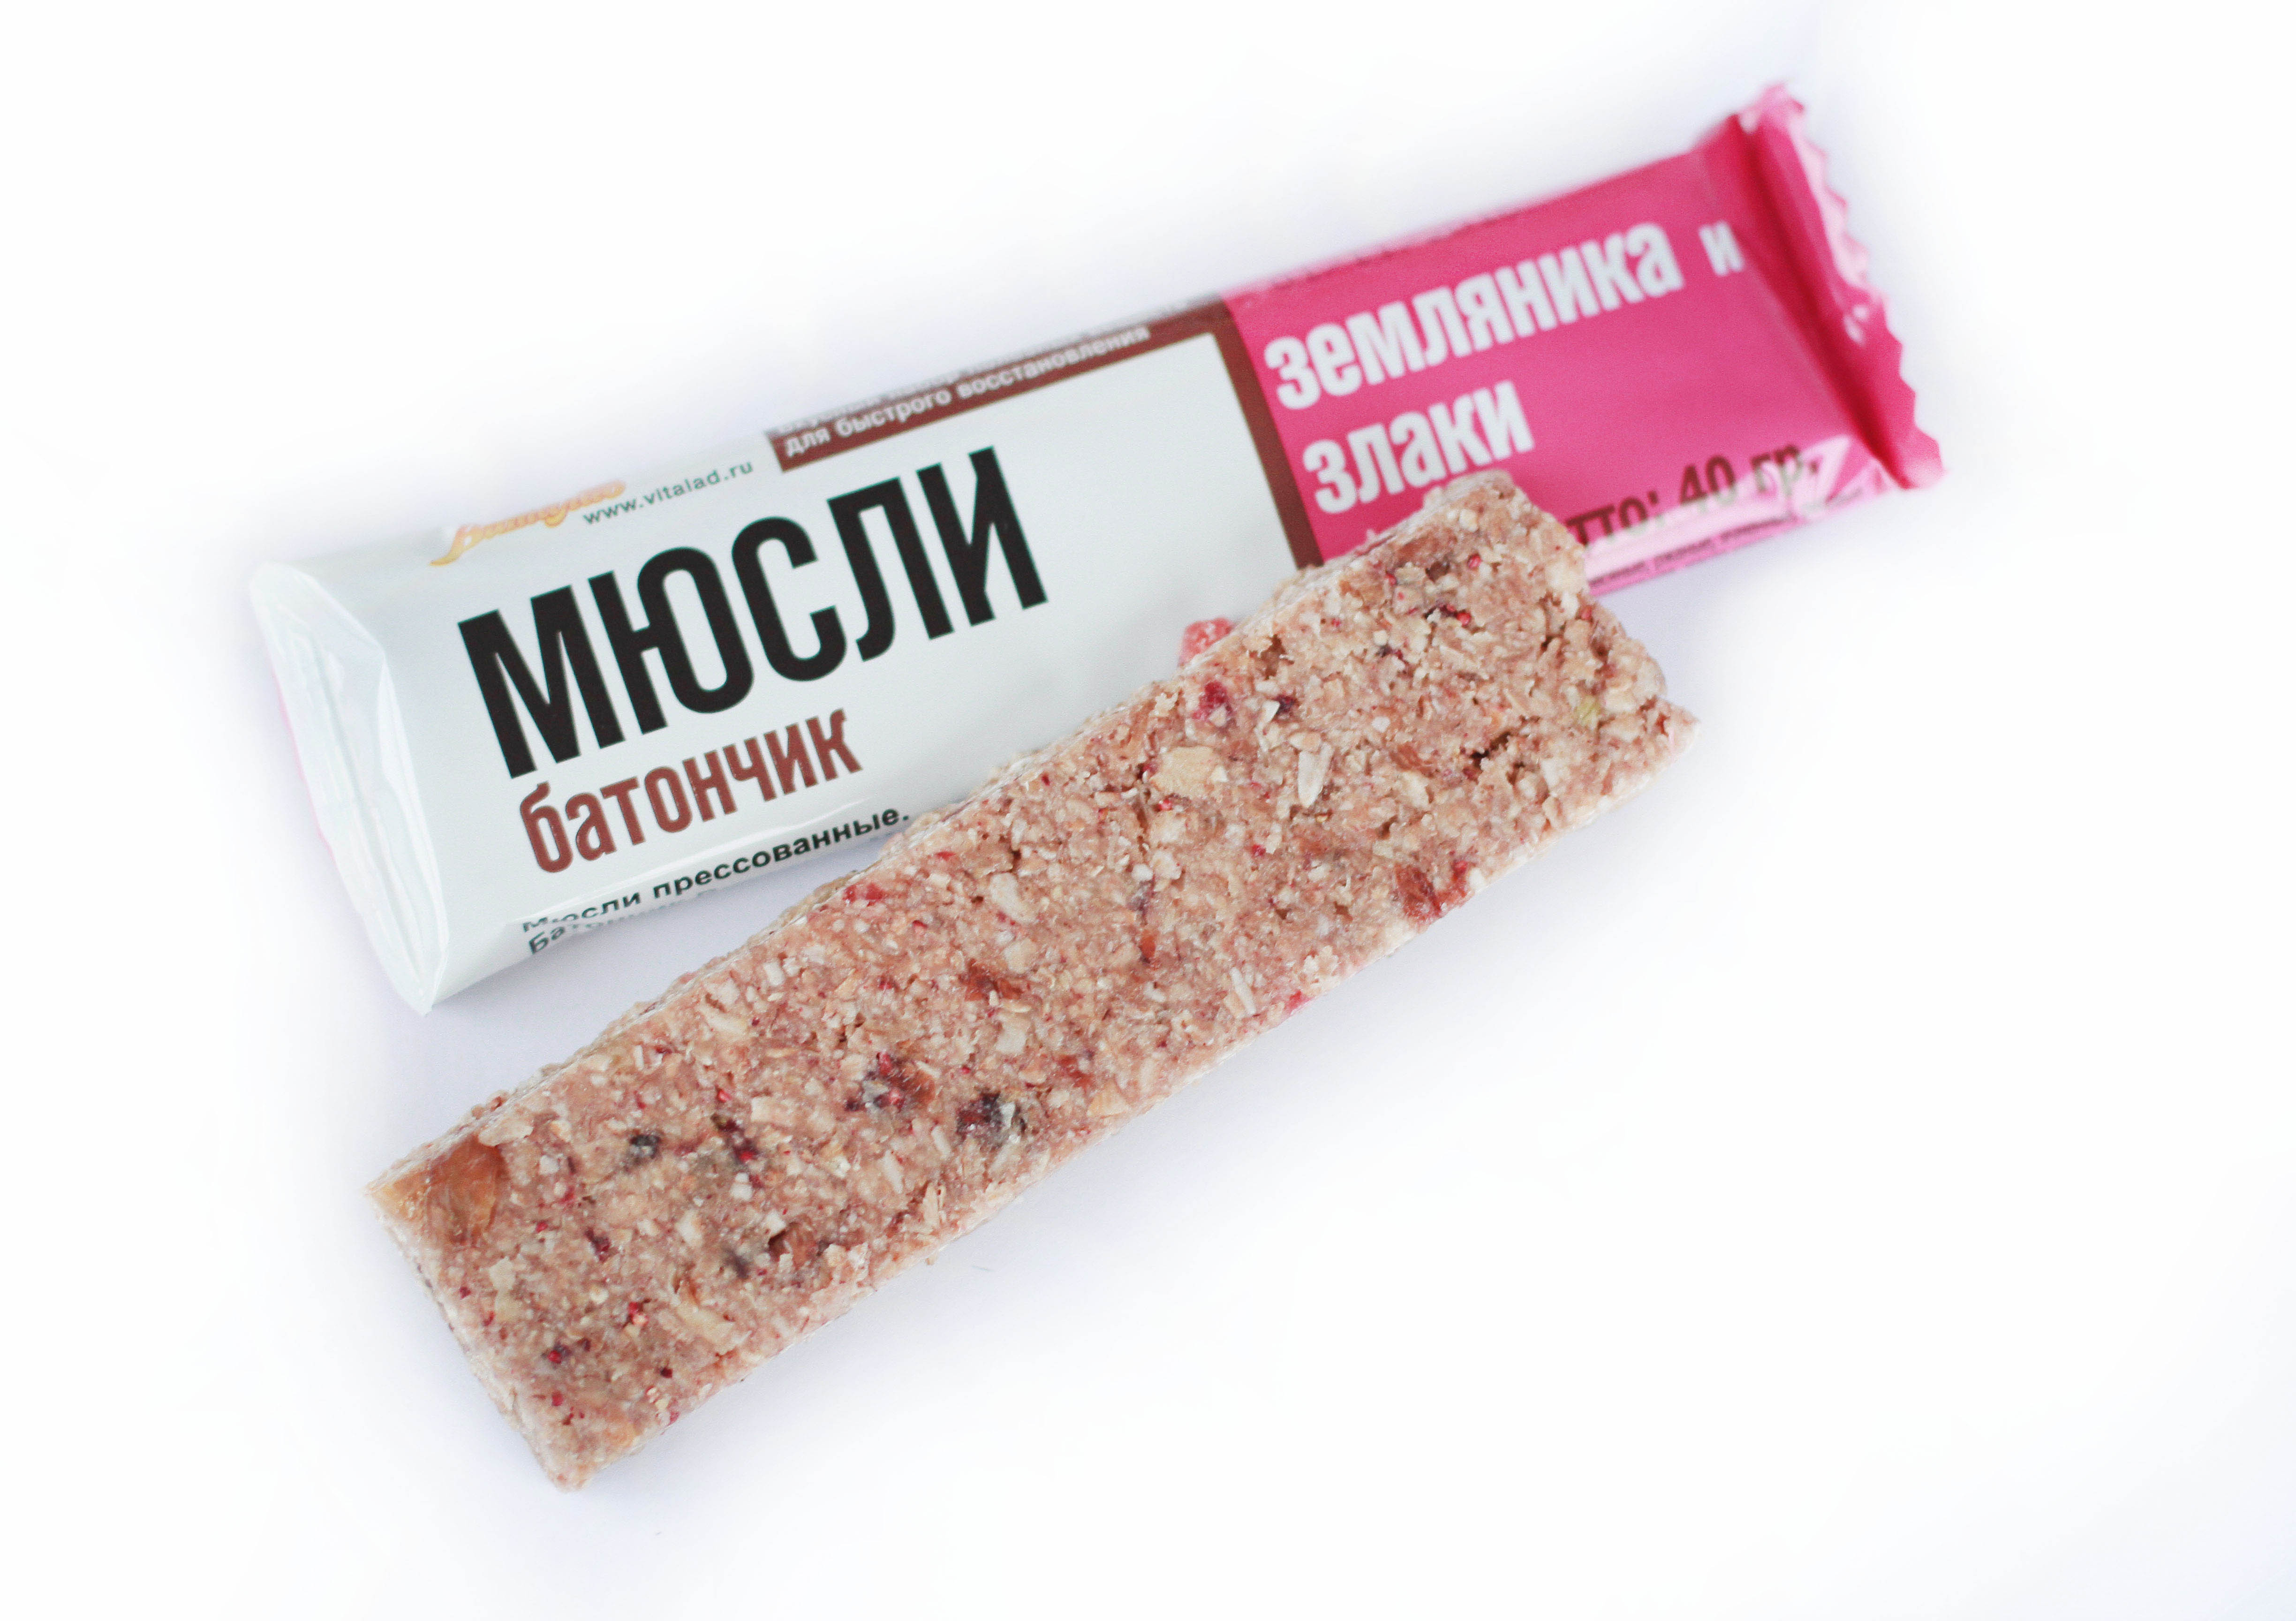 Muesli-bar Wild strawberry and cereals, 40 grams